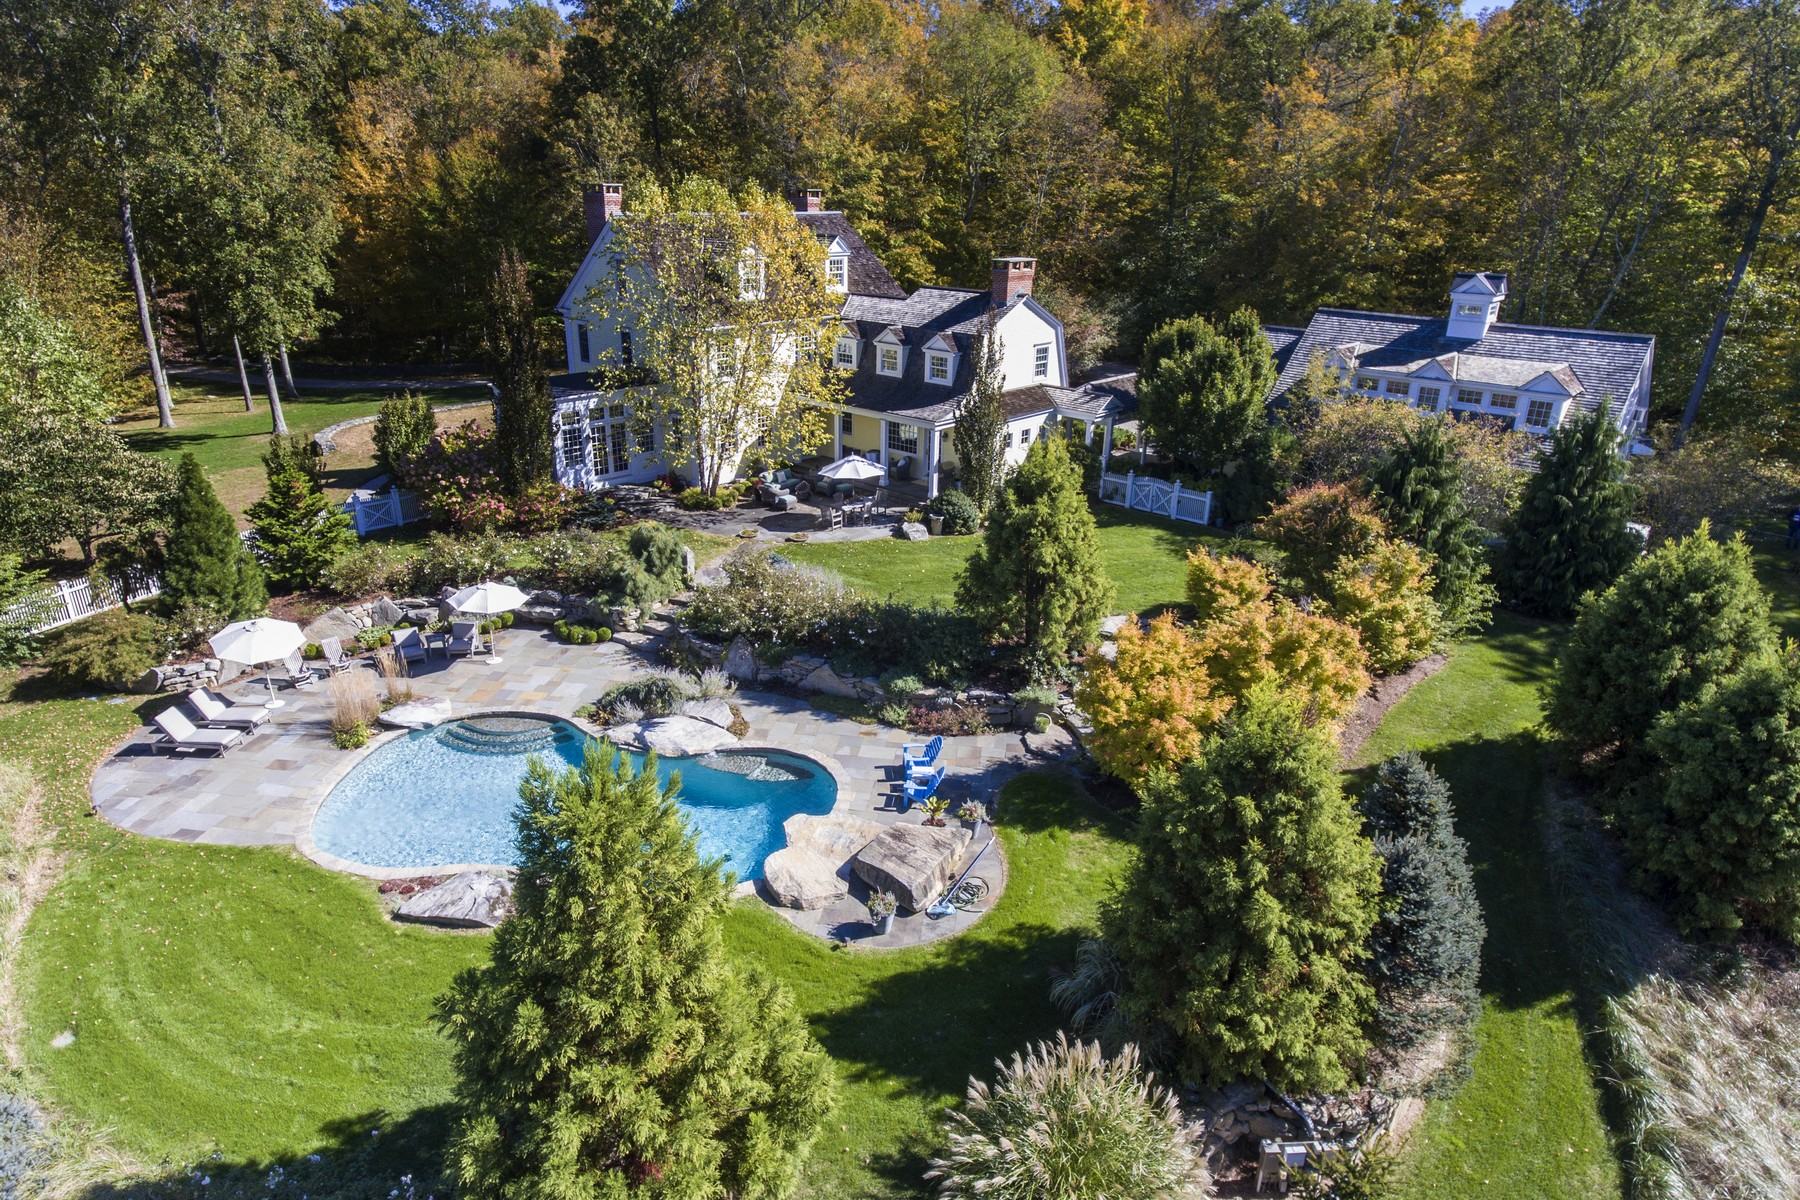 Tek Ailelik Ev için Satış at Resort Living on 33 Acres, Custom Home 123 Brush Hill Rd Lyme, Connecticut, 06371 Amerika Birleşik Devletleri